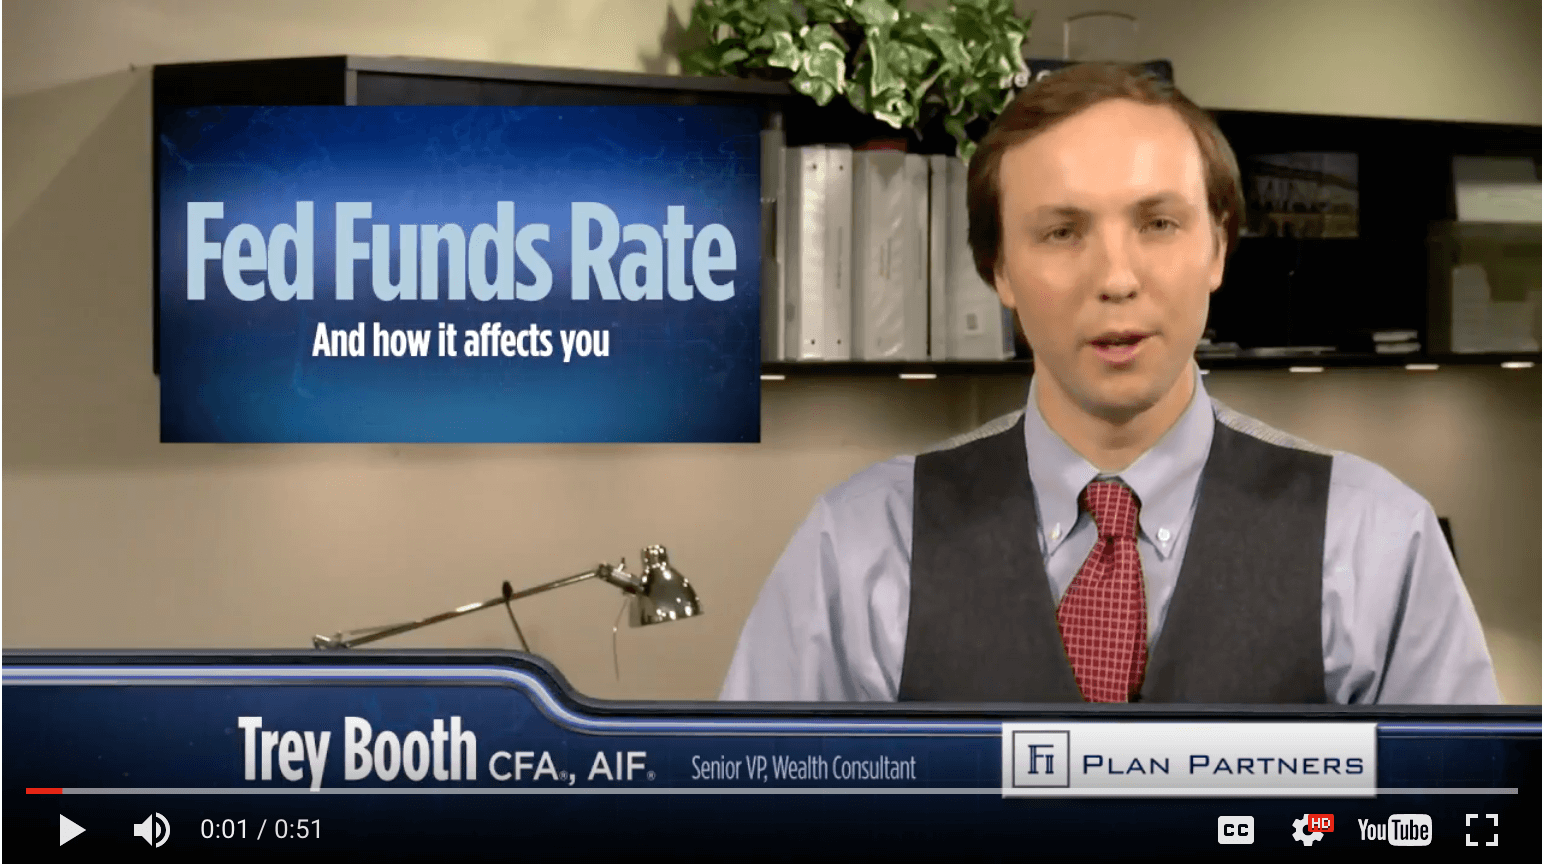 #213: How The Fed Funds Rate Affects You